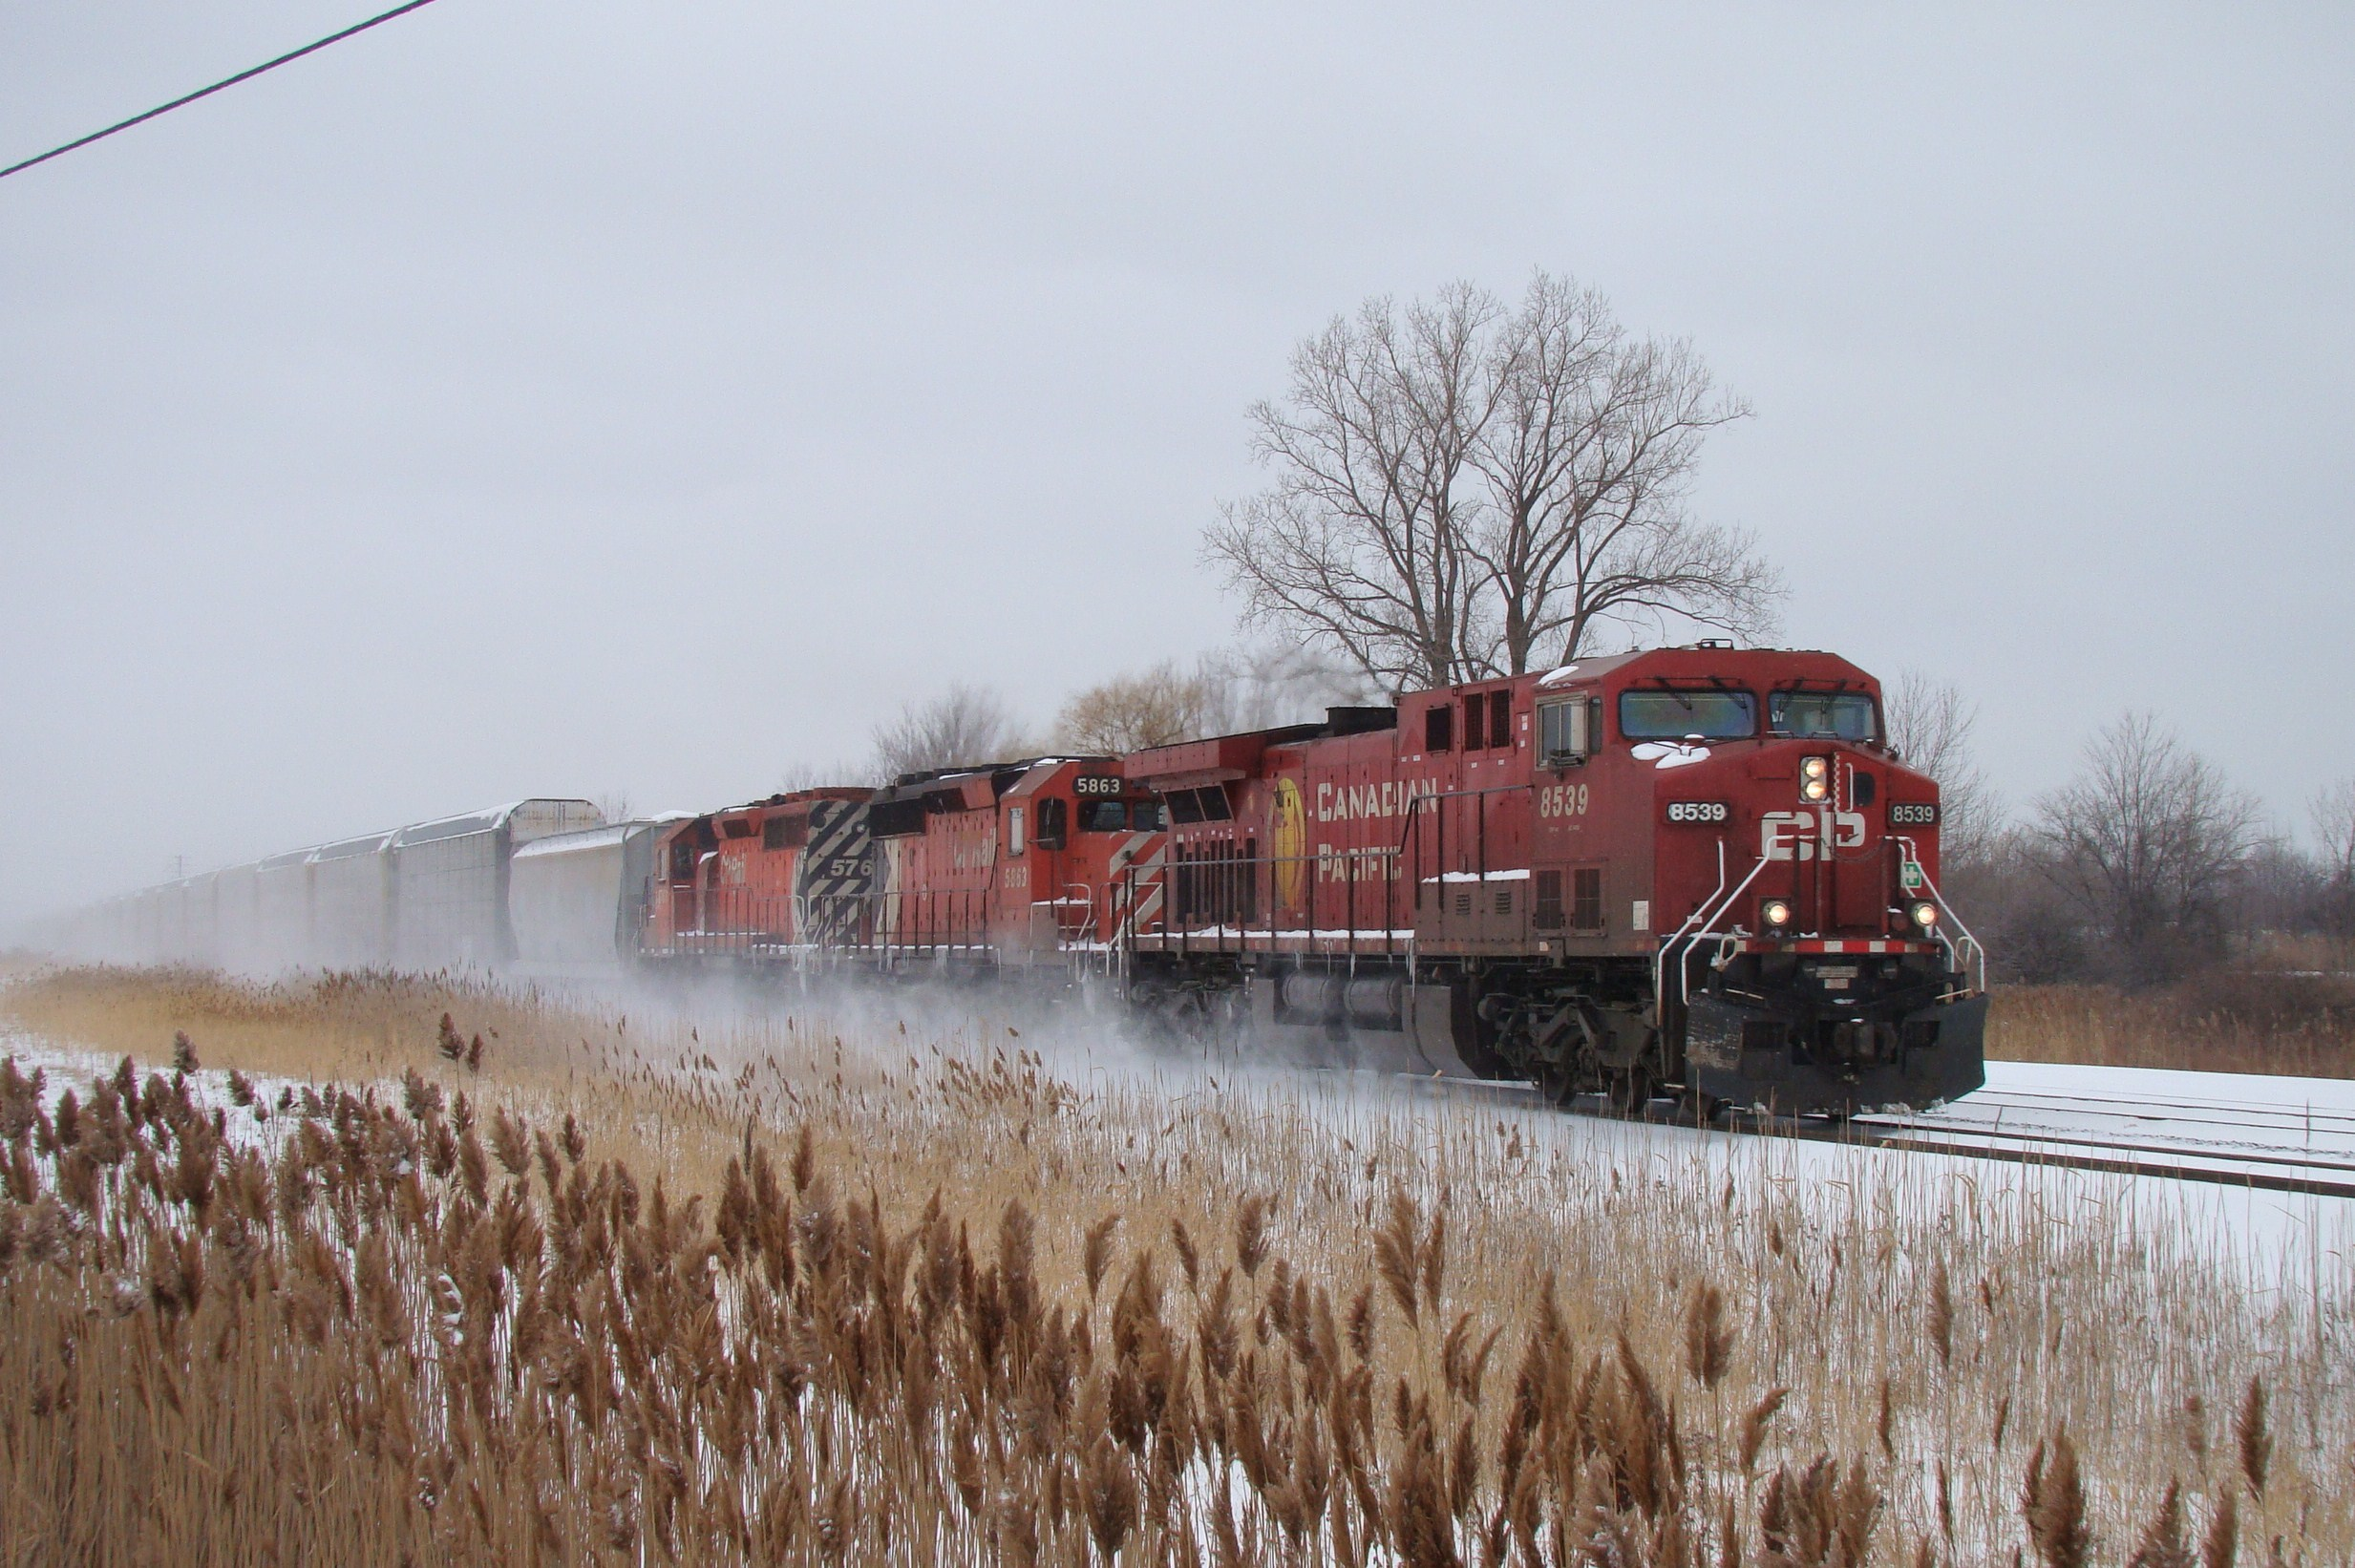 trains Canada vehicles World HD Wallpaper